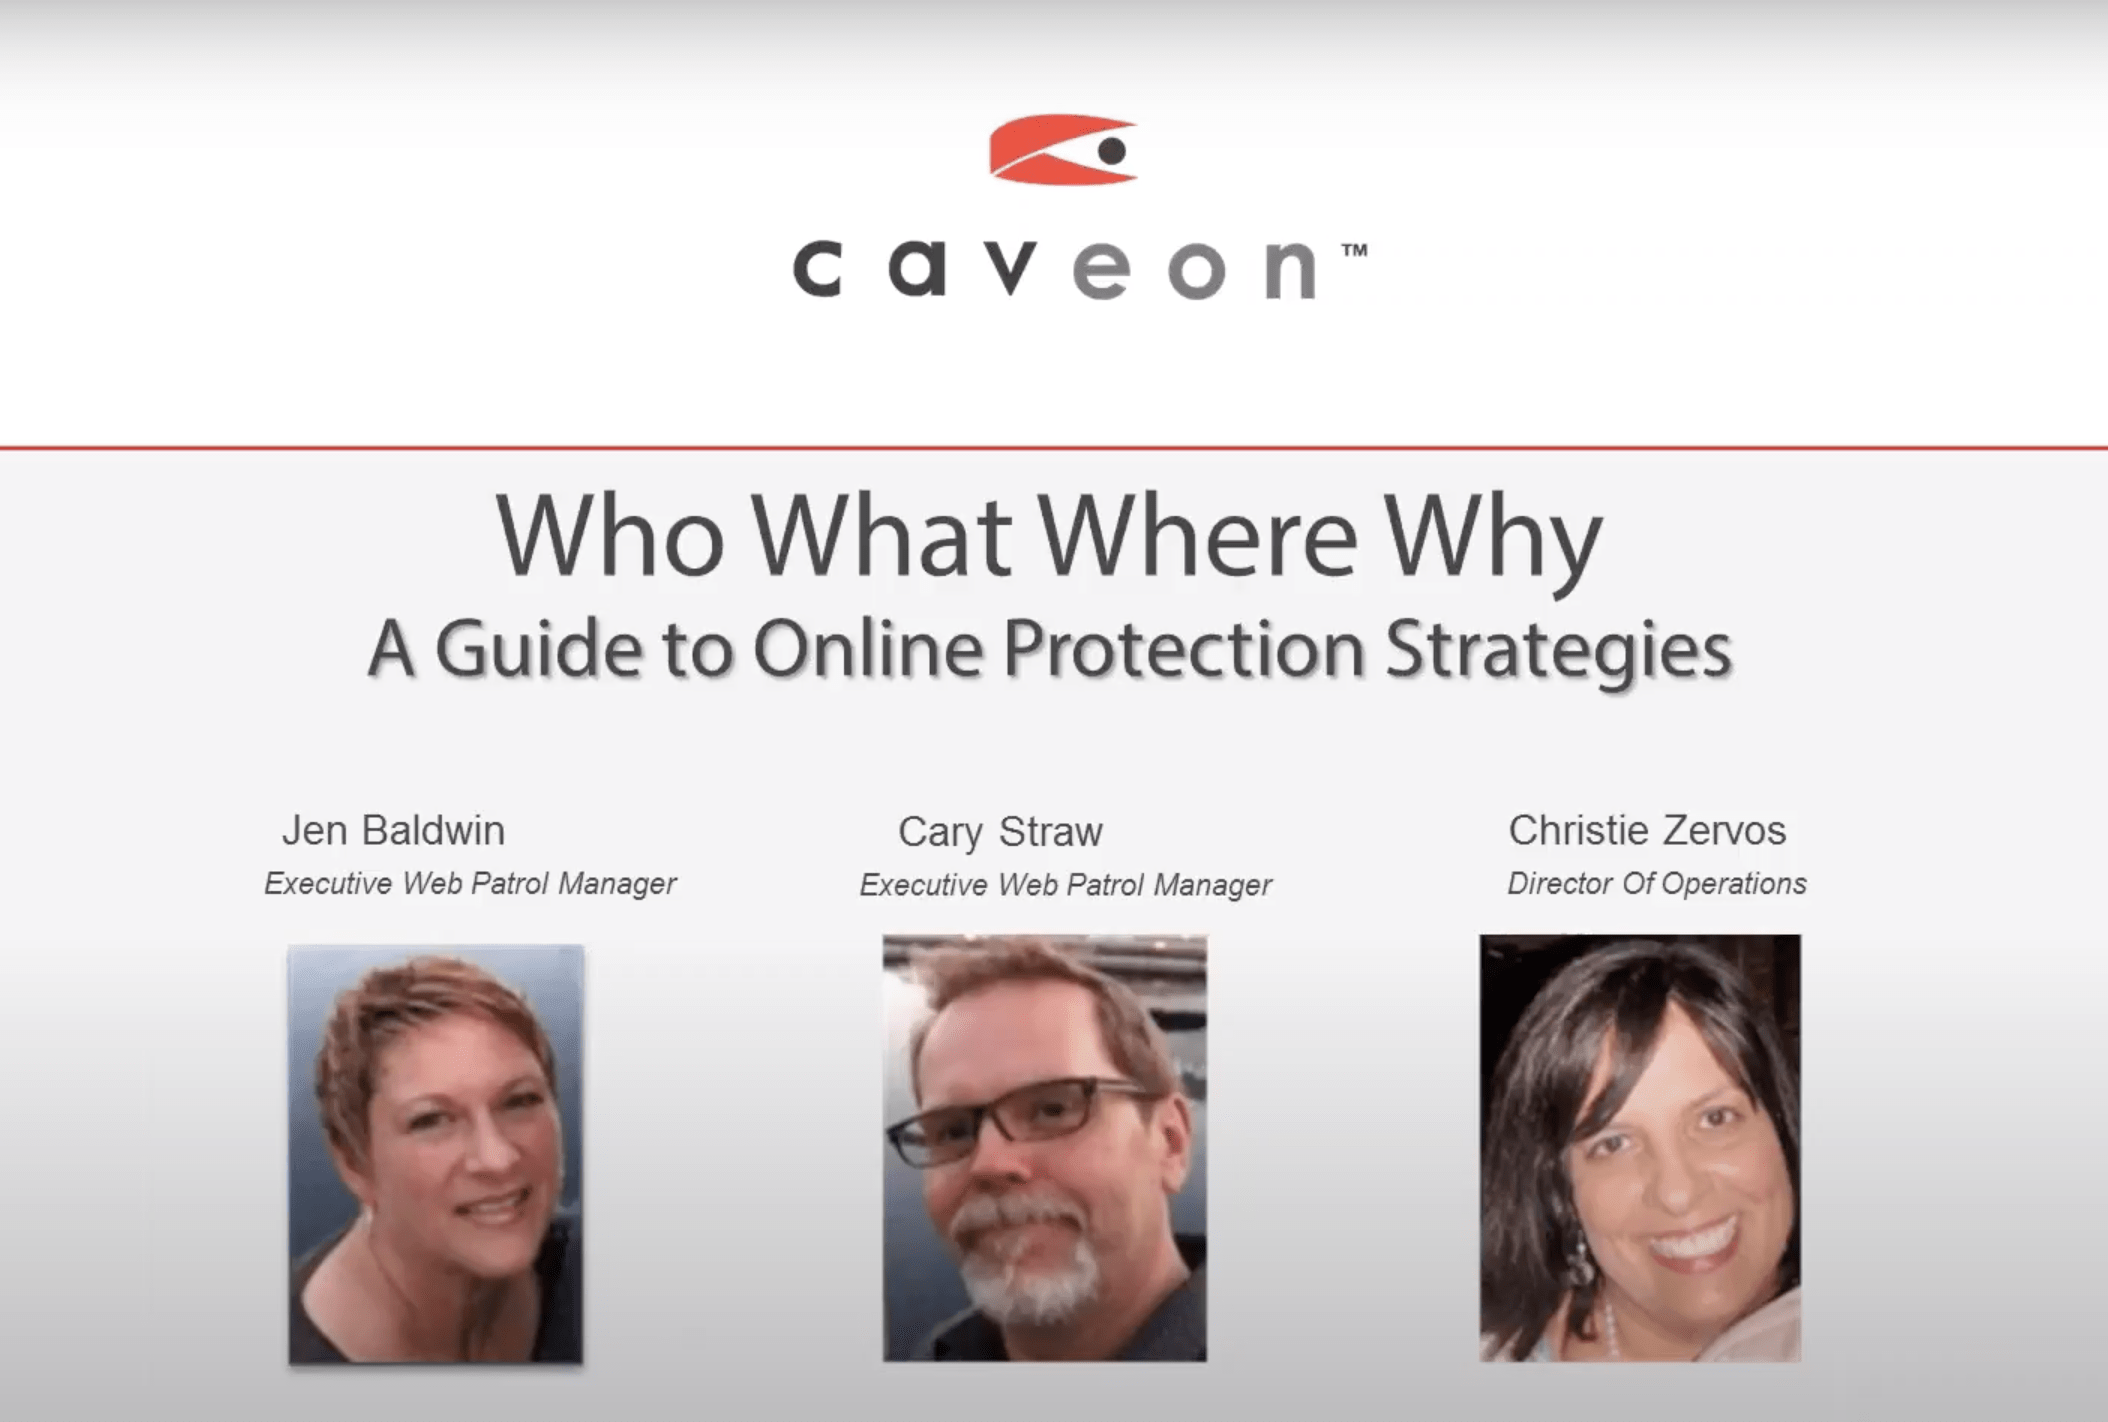 A Guide to Online Protection Strategies